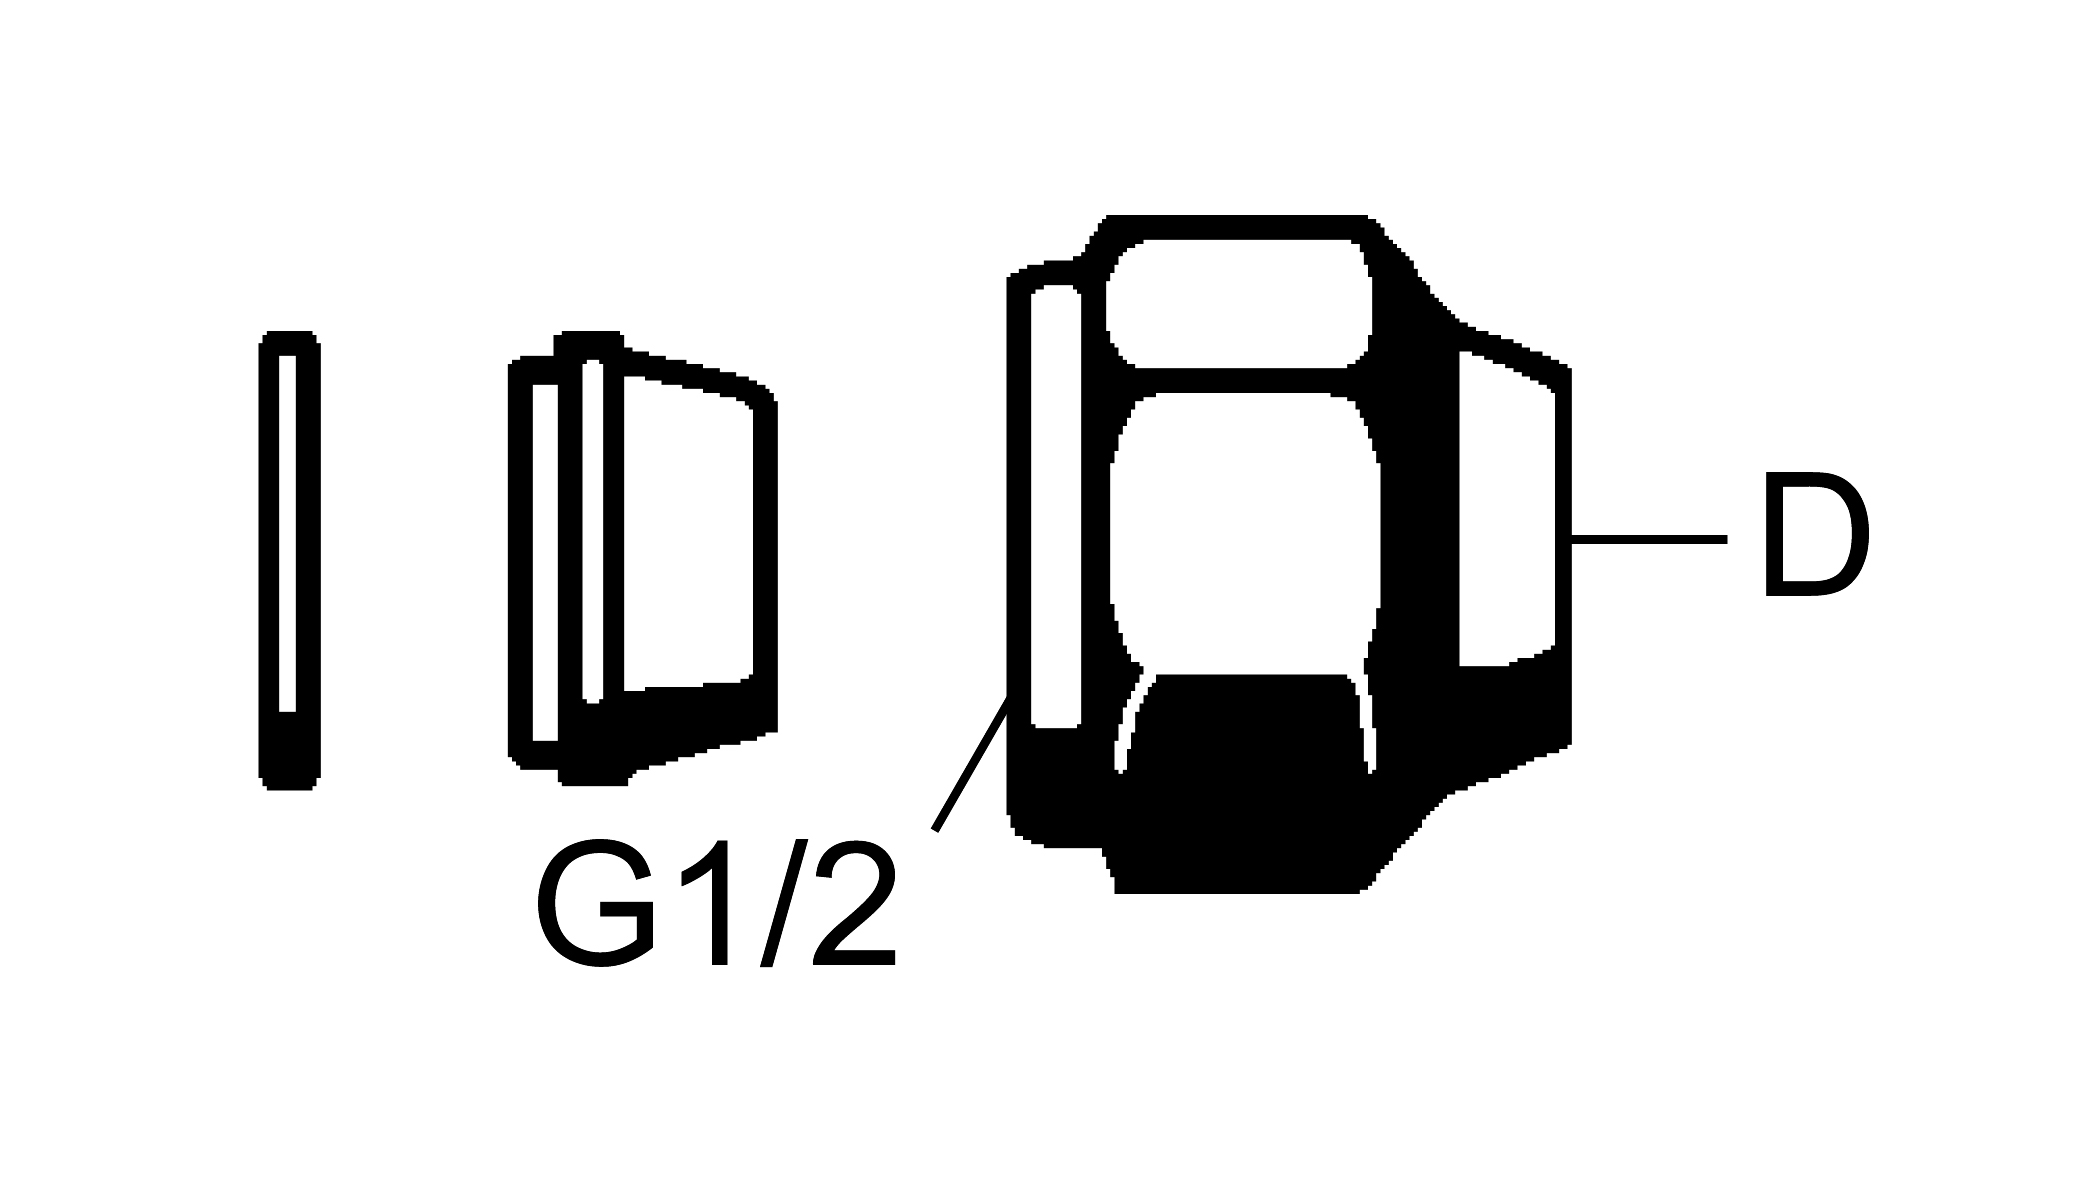 K1801-1531.png